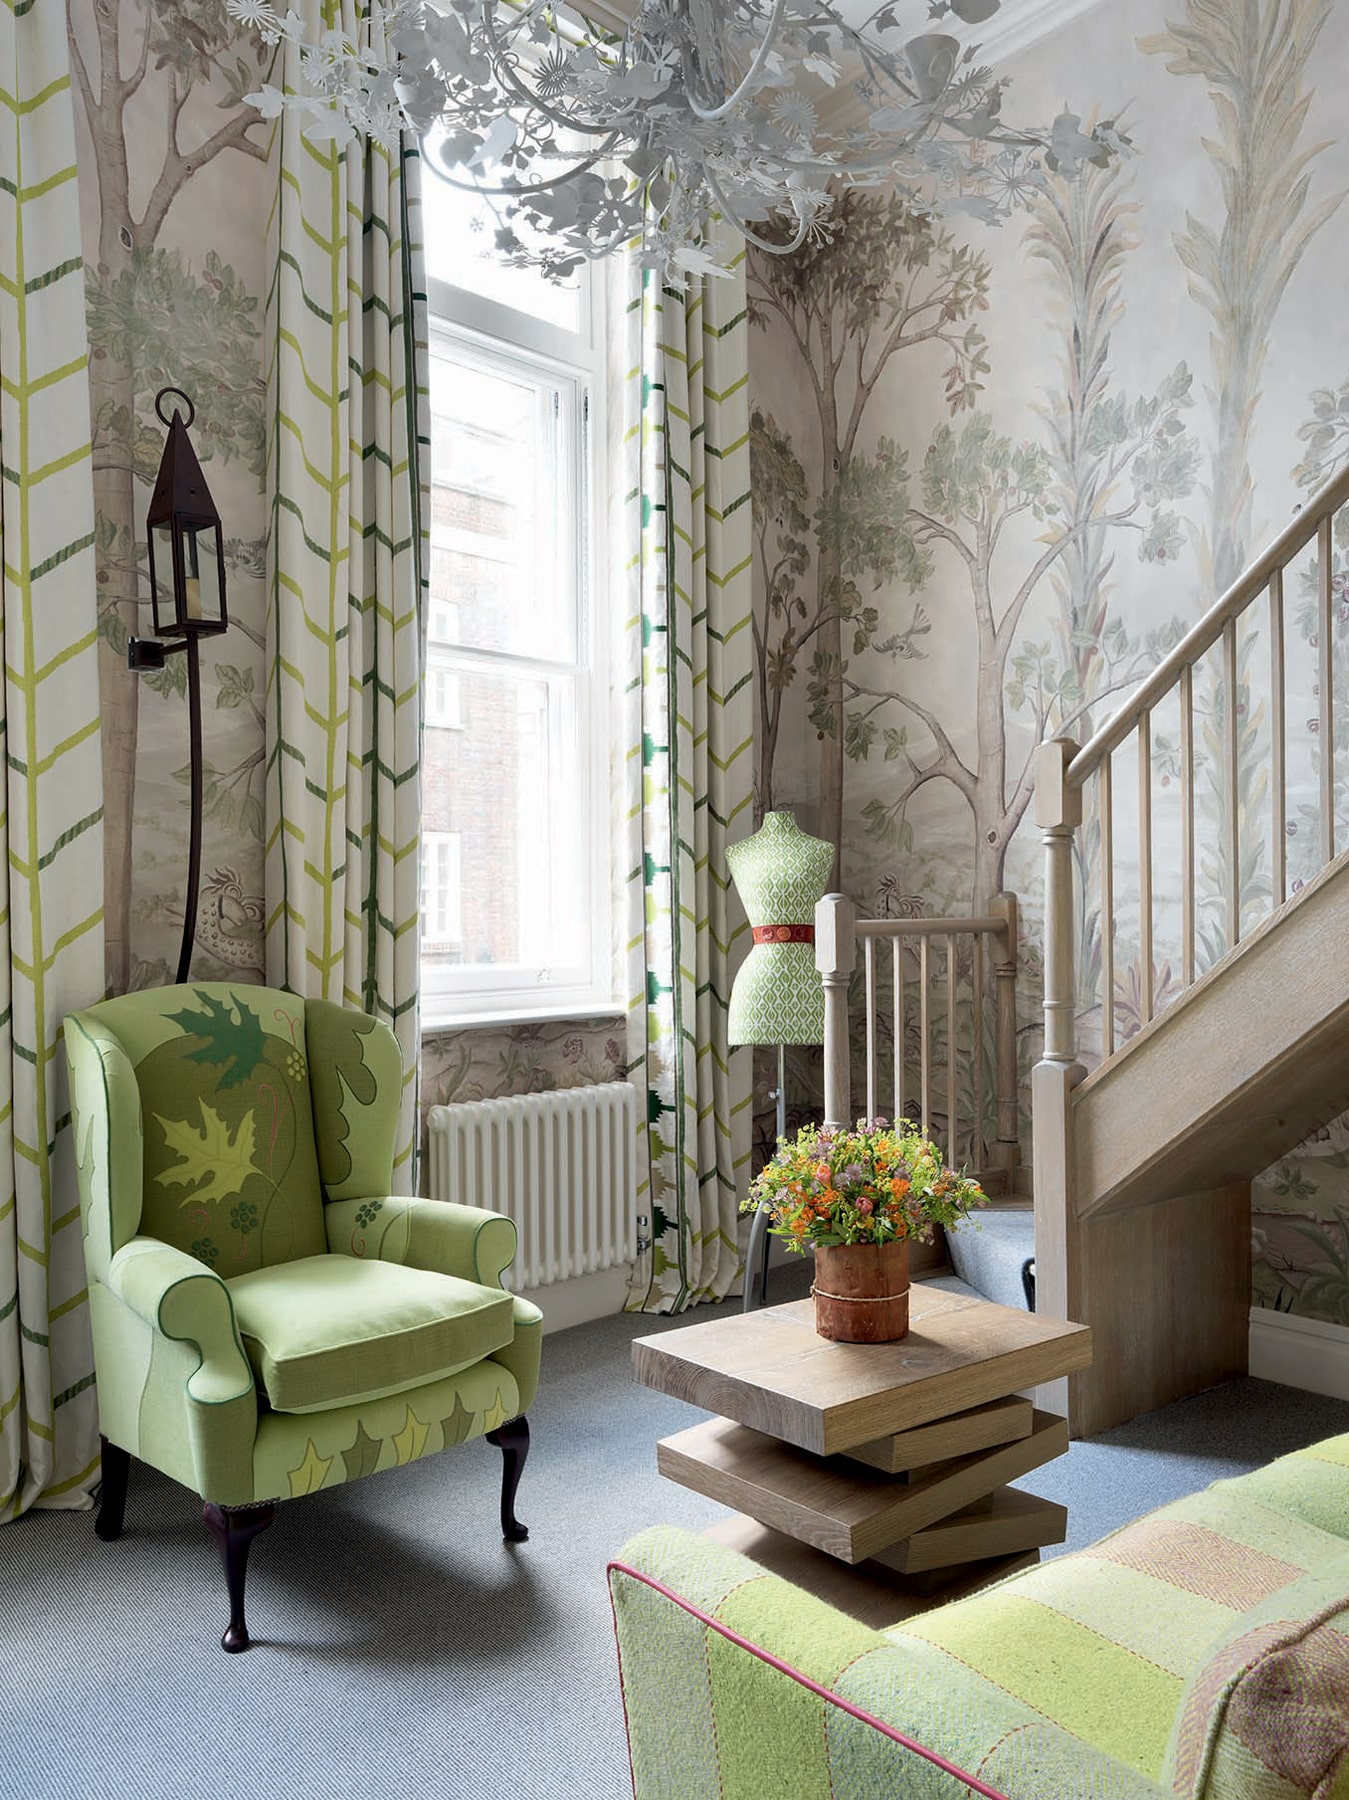 Sitting room interior space with tree patterned wallpaper, a green armchair, dress form, and couch